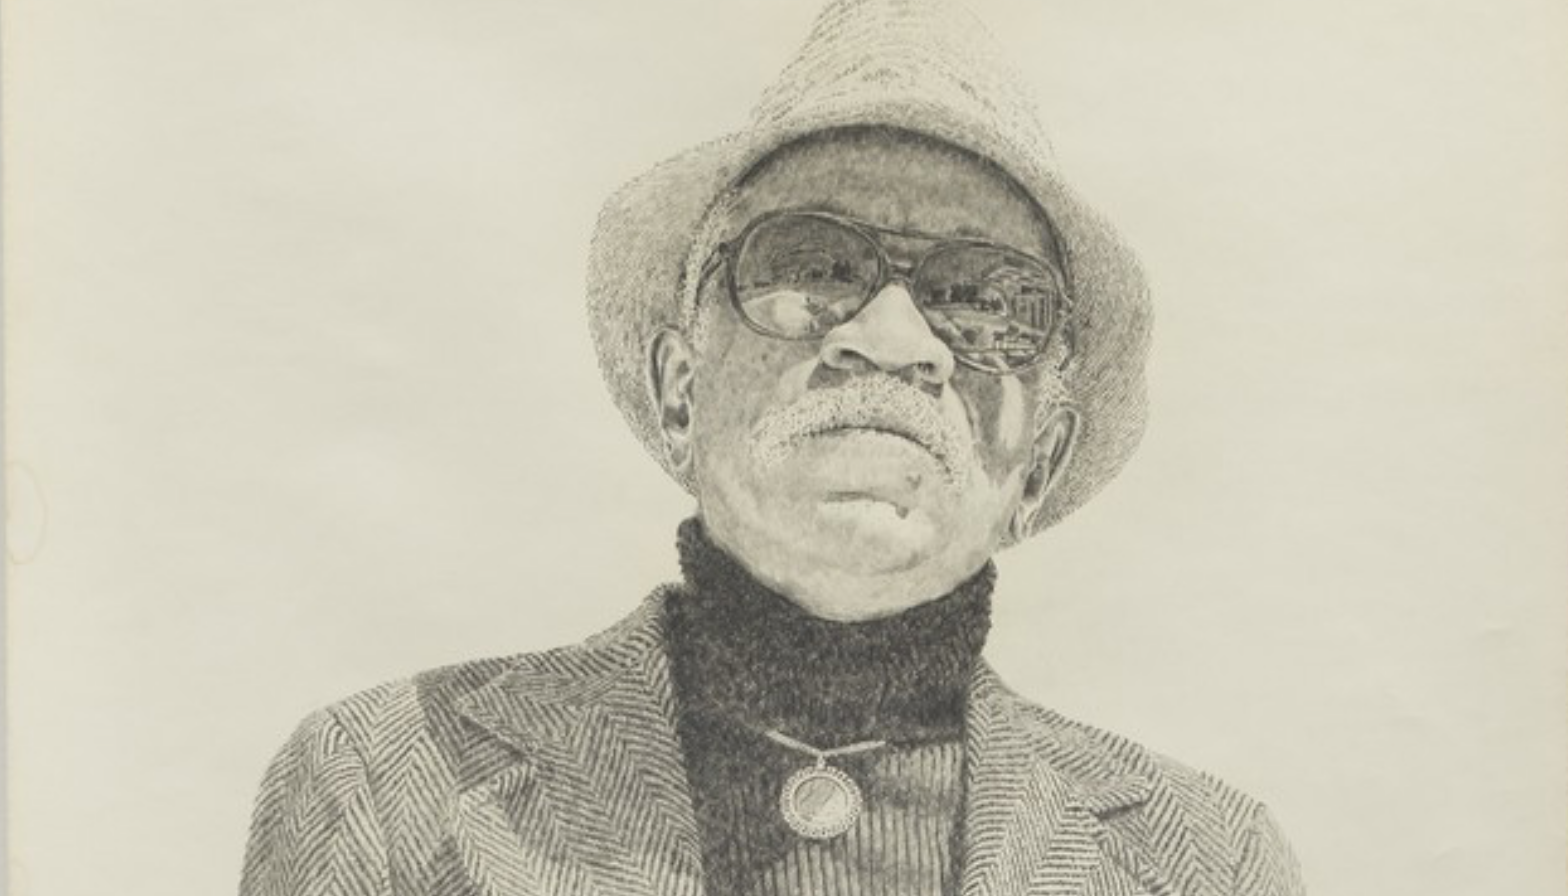 Artist charles white was a devoted teacher who served as a